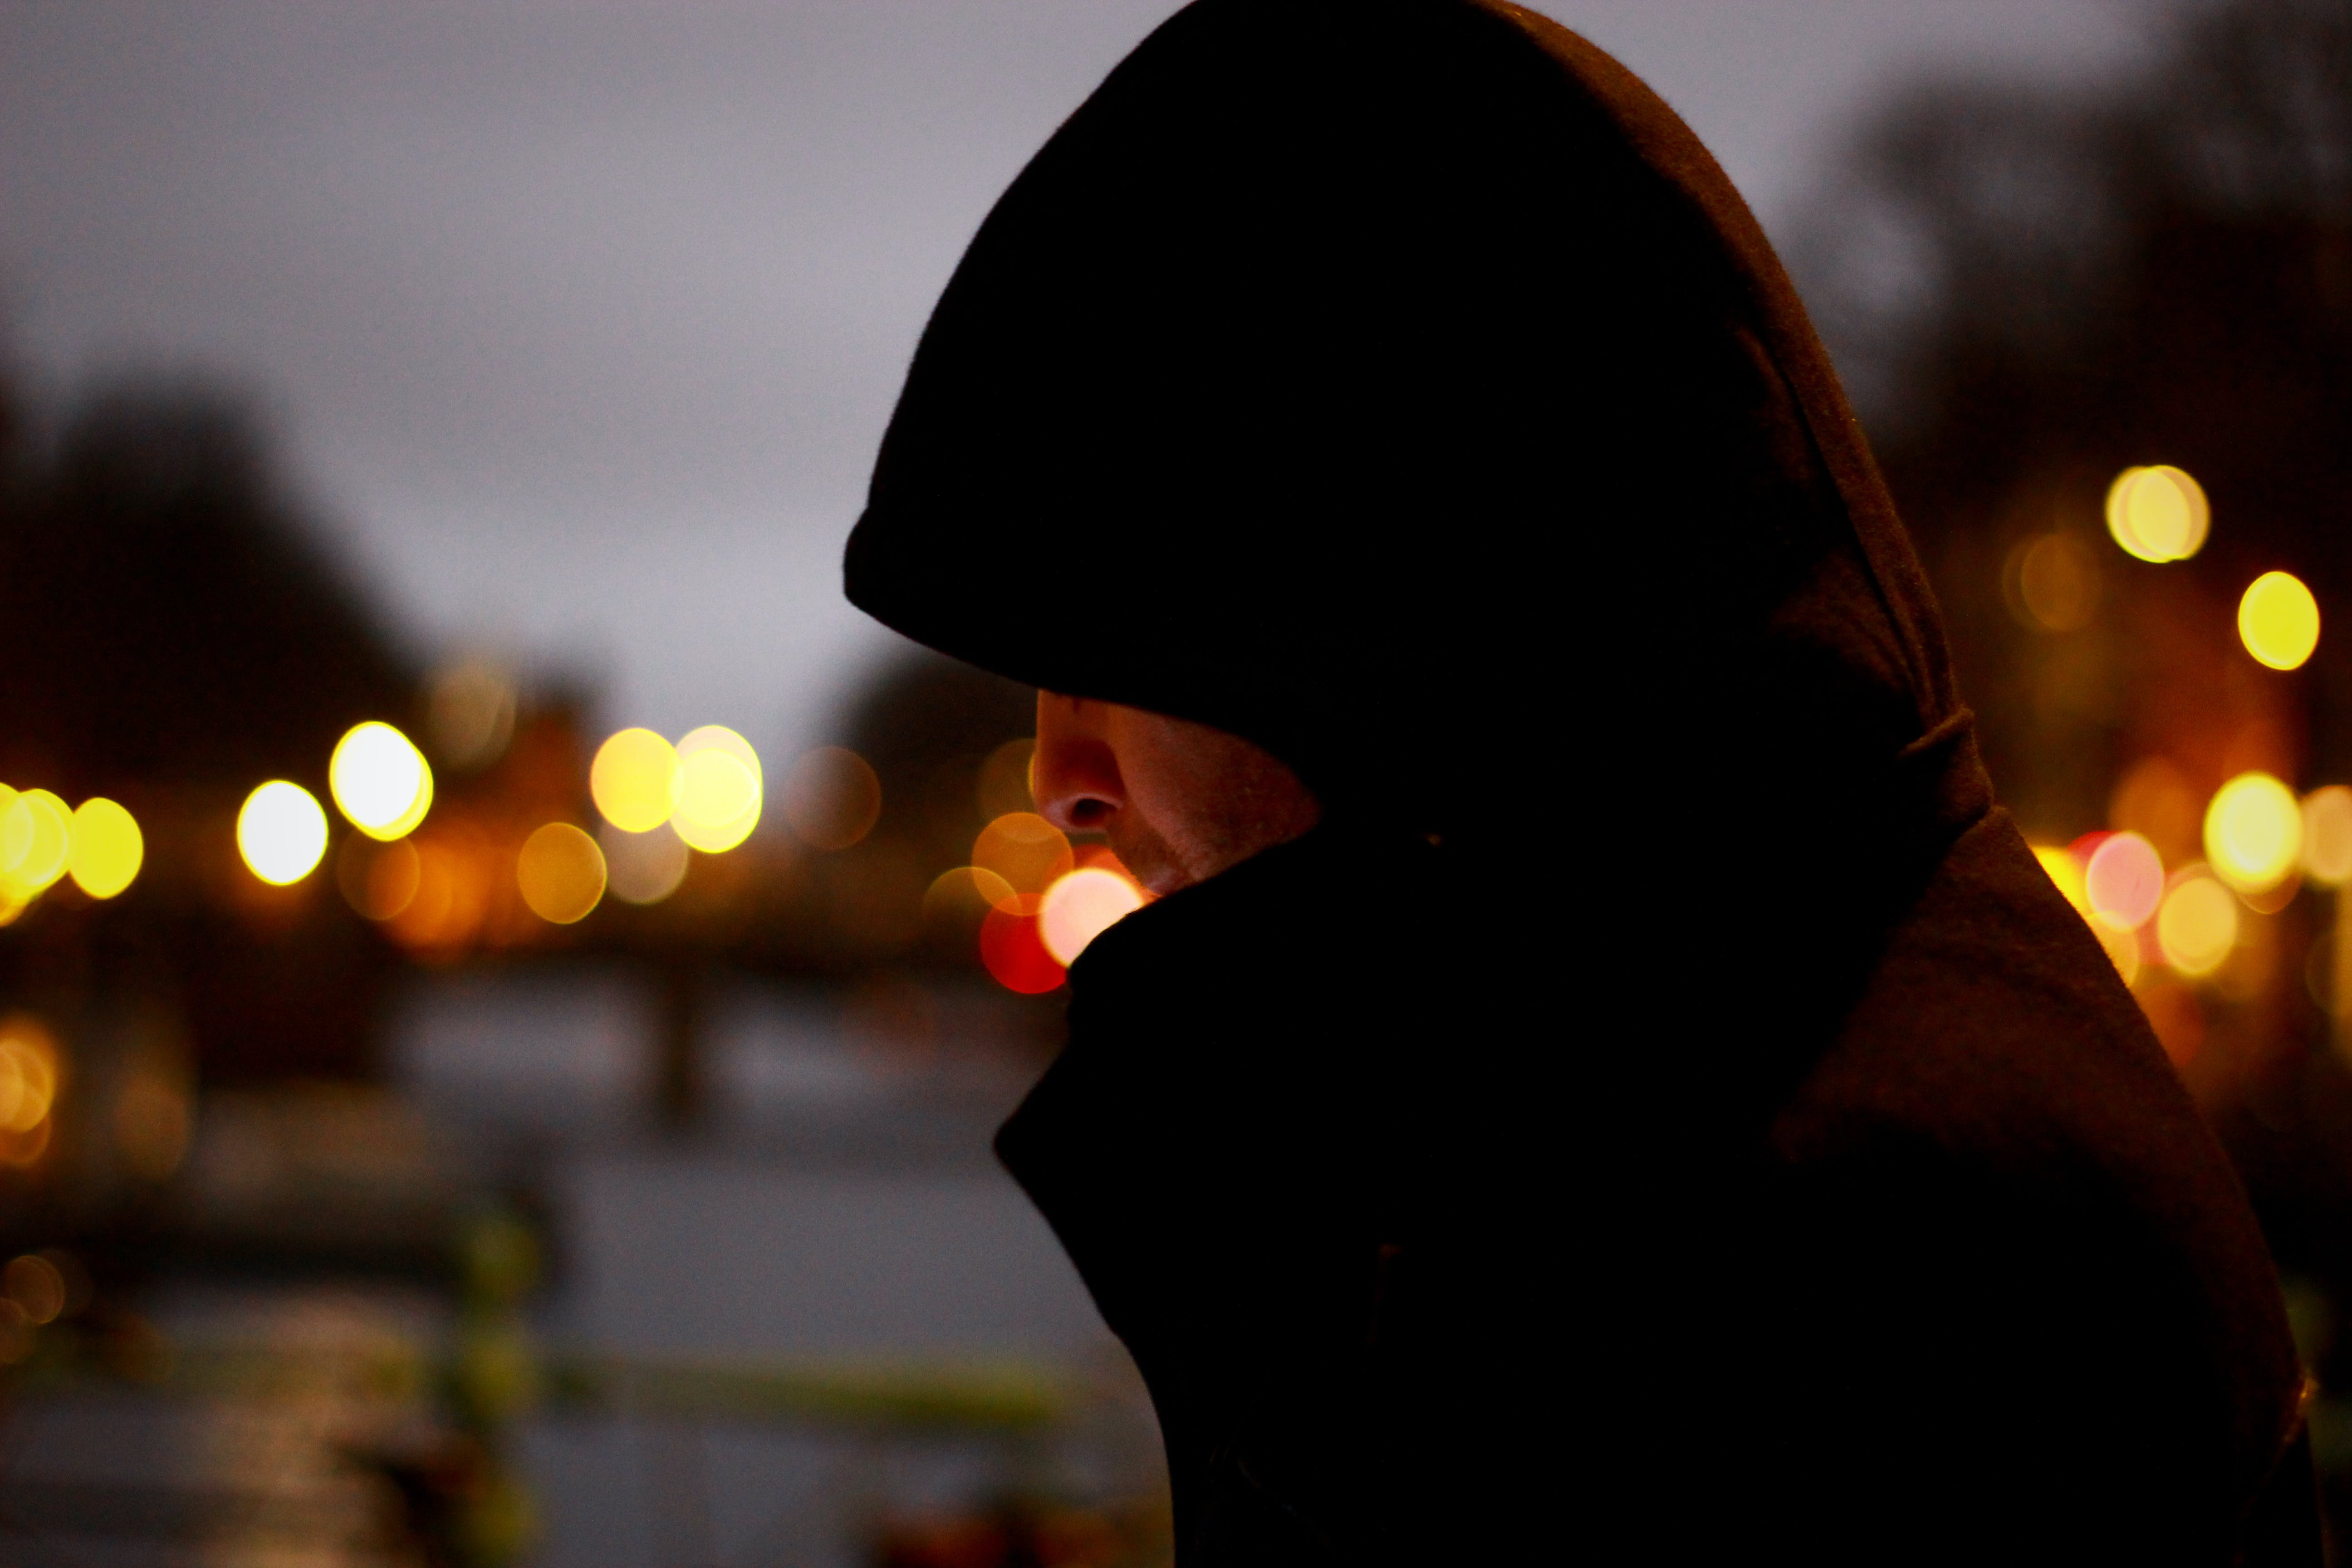 Close Up Photo of Person Wearing Hoodie